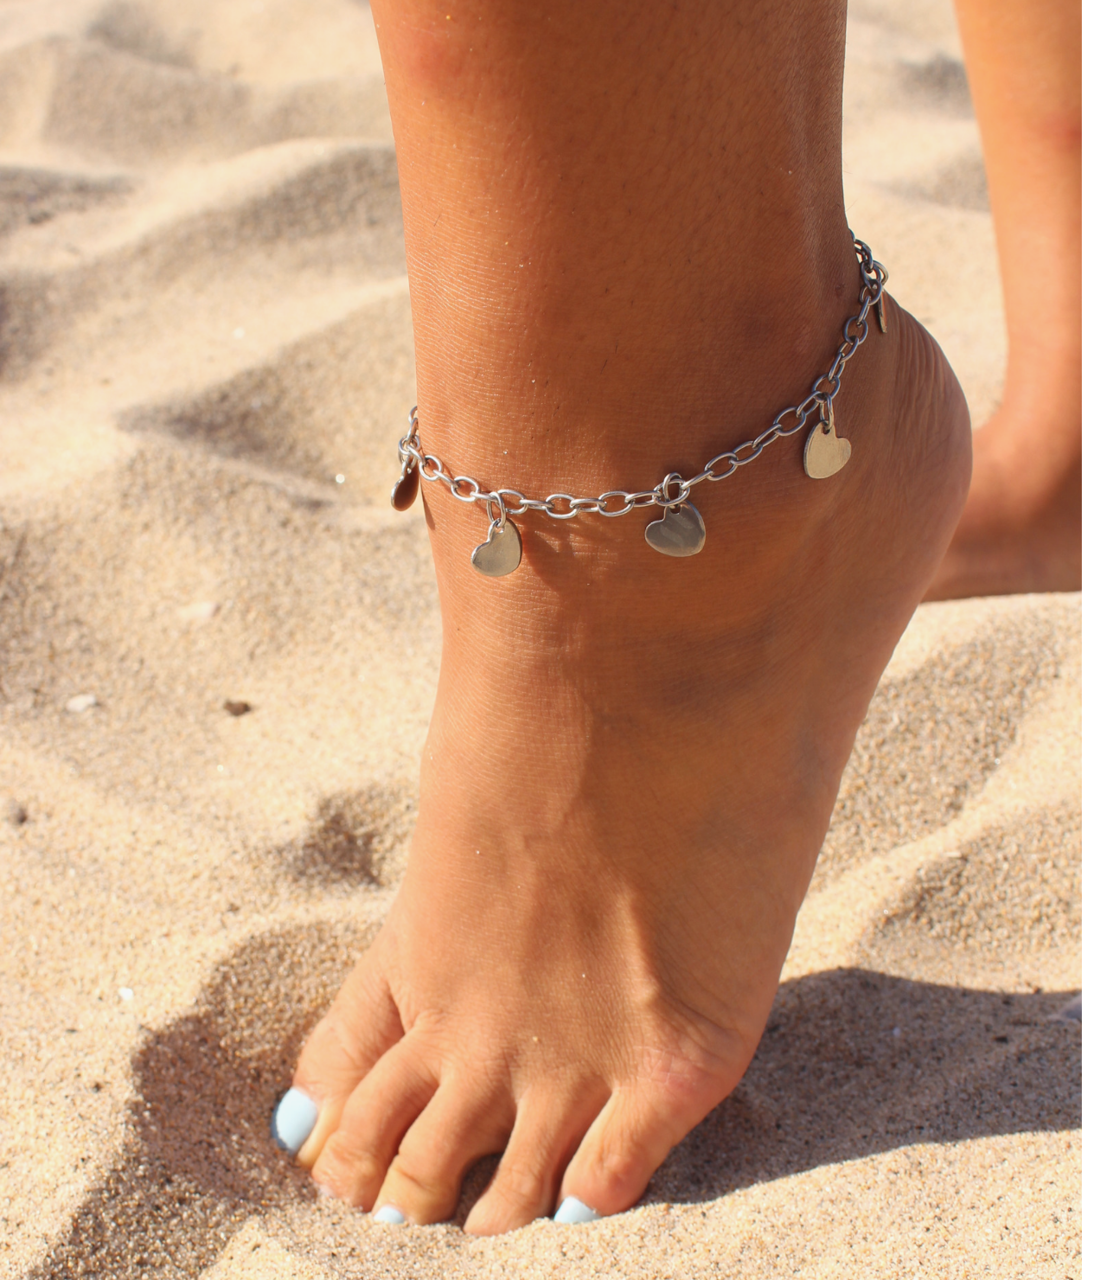 barefoot on the sand with a silver multi heart anklet